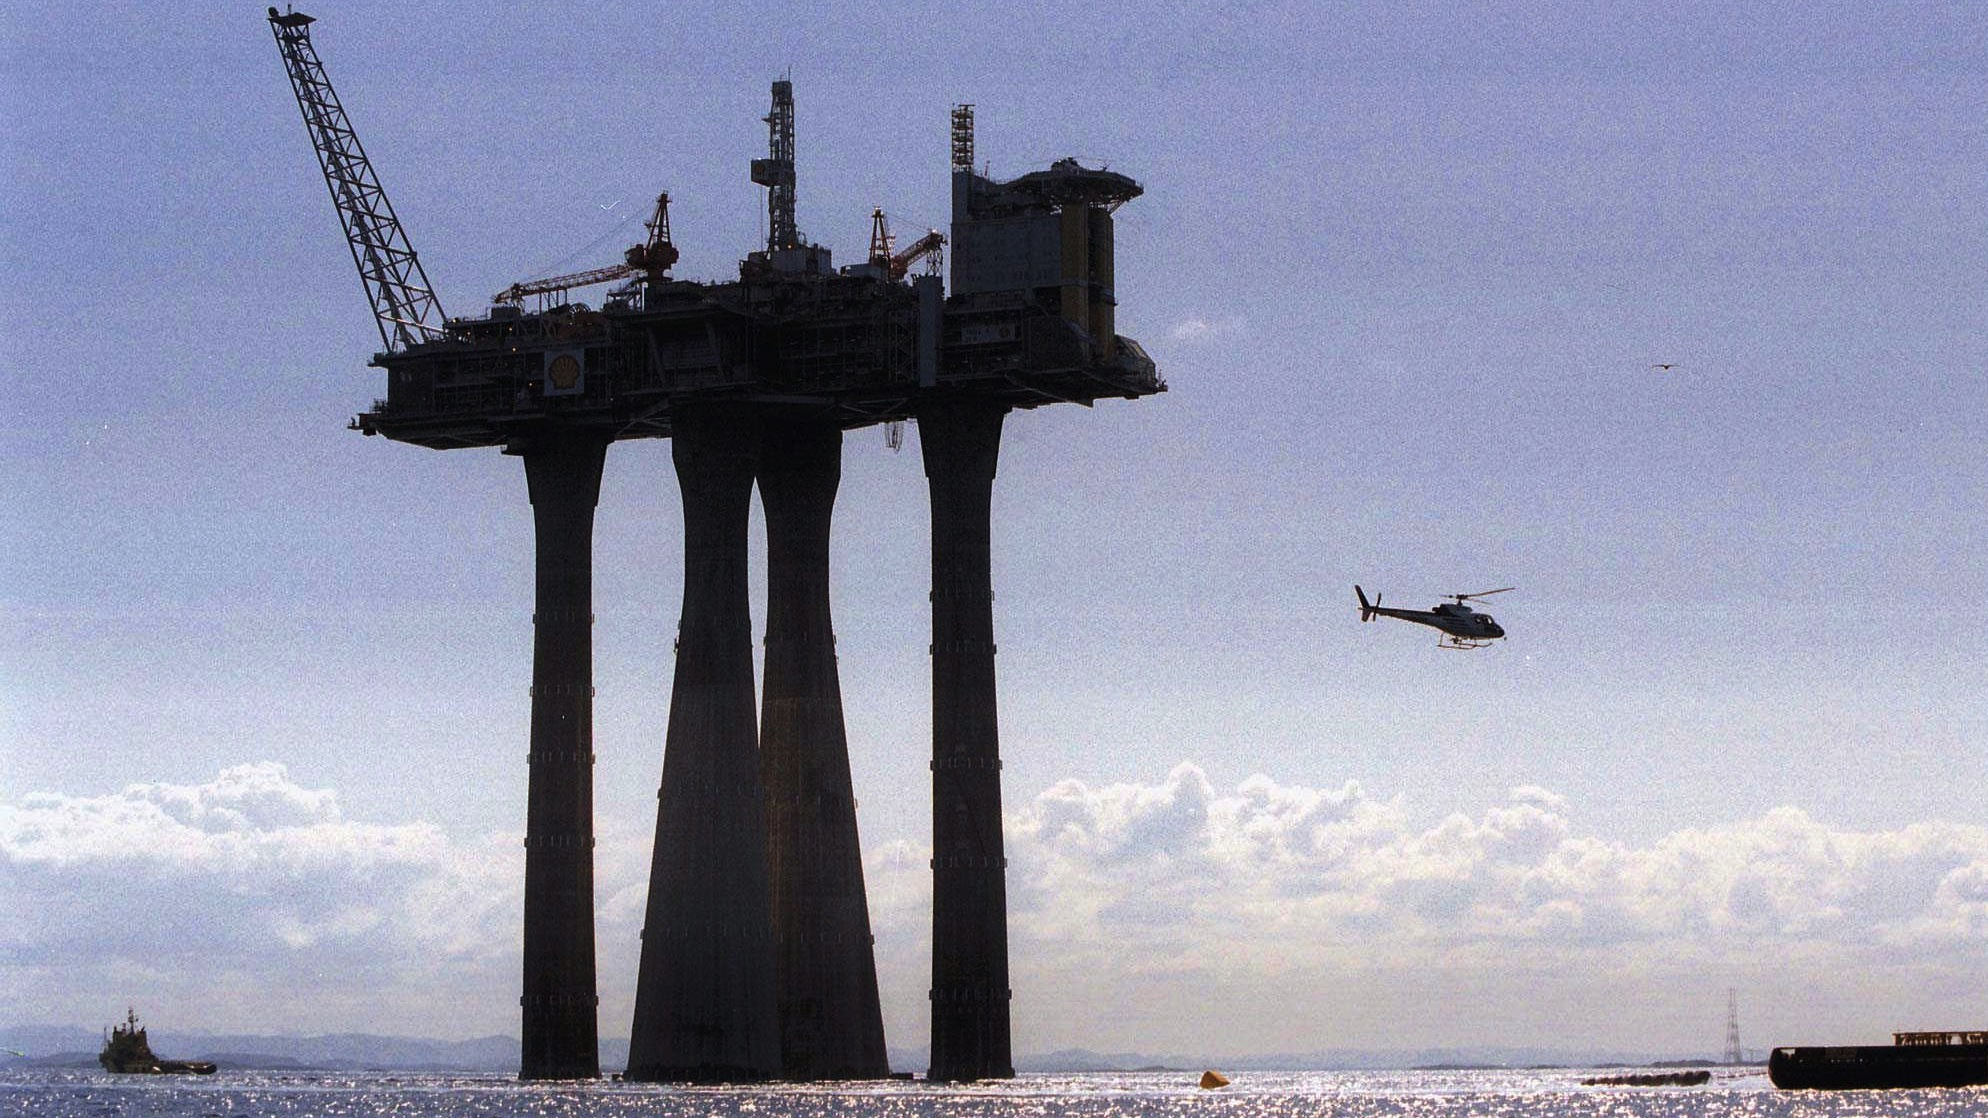 Norway's Troll gas platform.